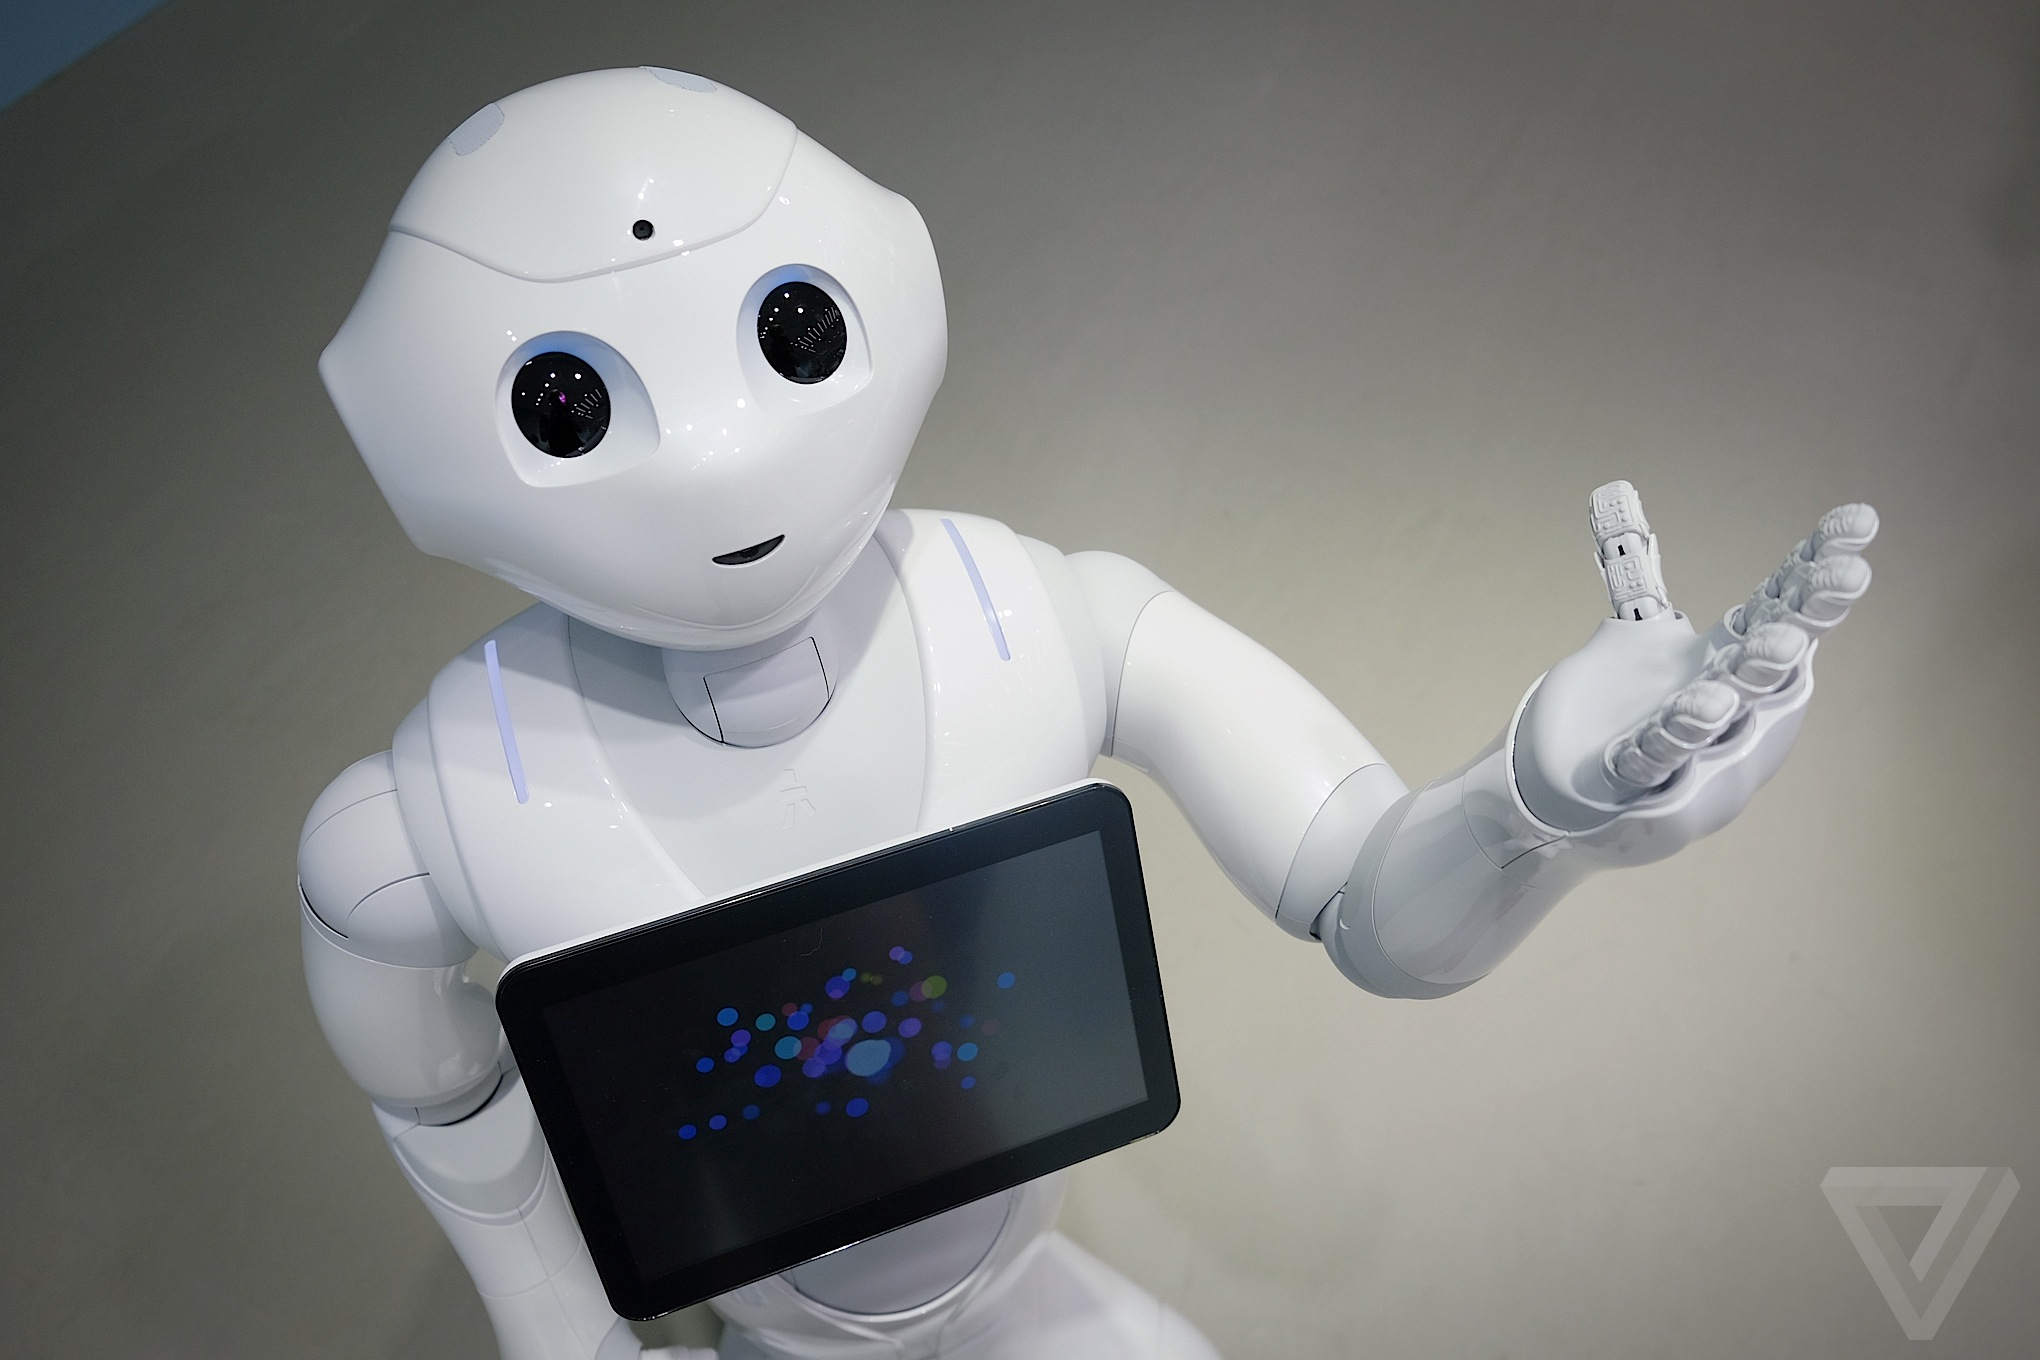 giappone robot pepper